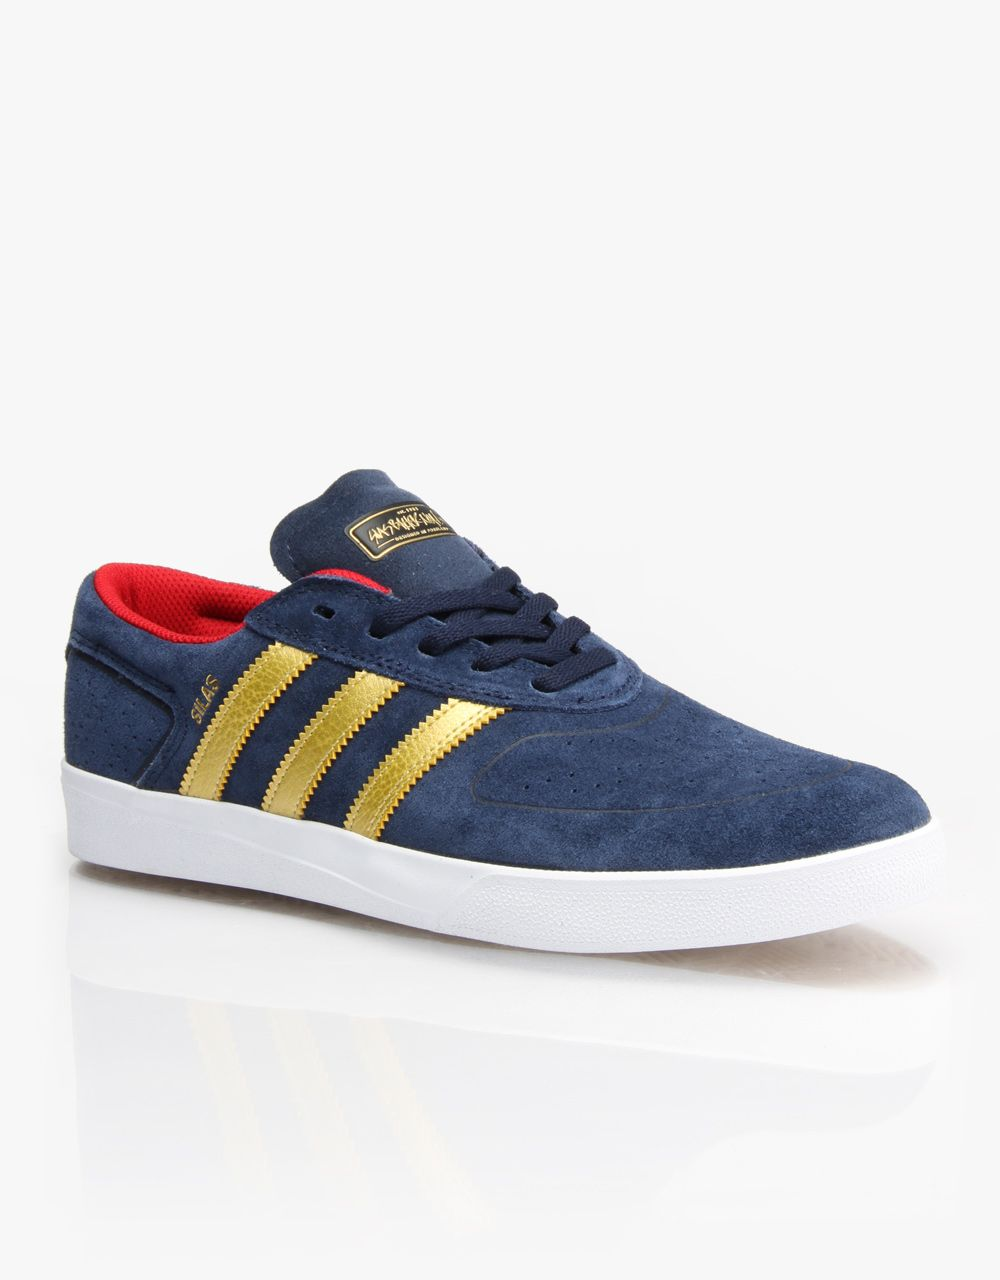 Adidas Silas Vulc Skate Shoes - Collegiate Navy/Gold Metallic/Scarlet -  RouteOne.